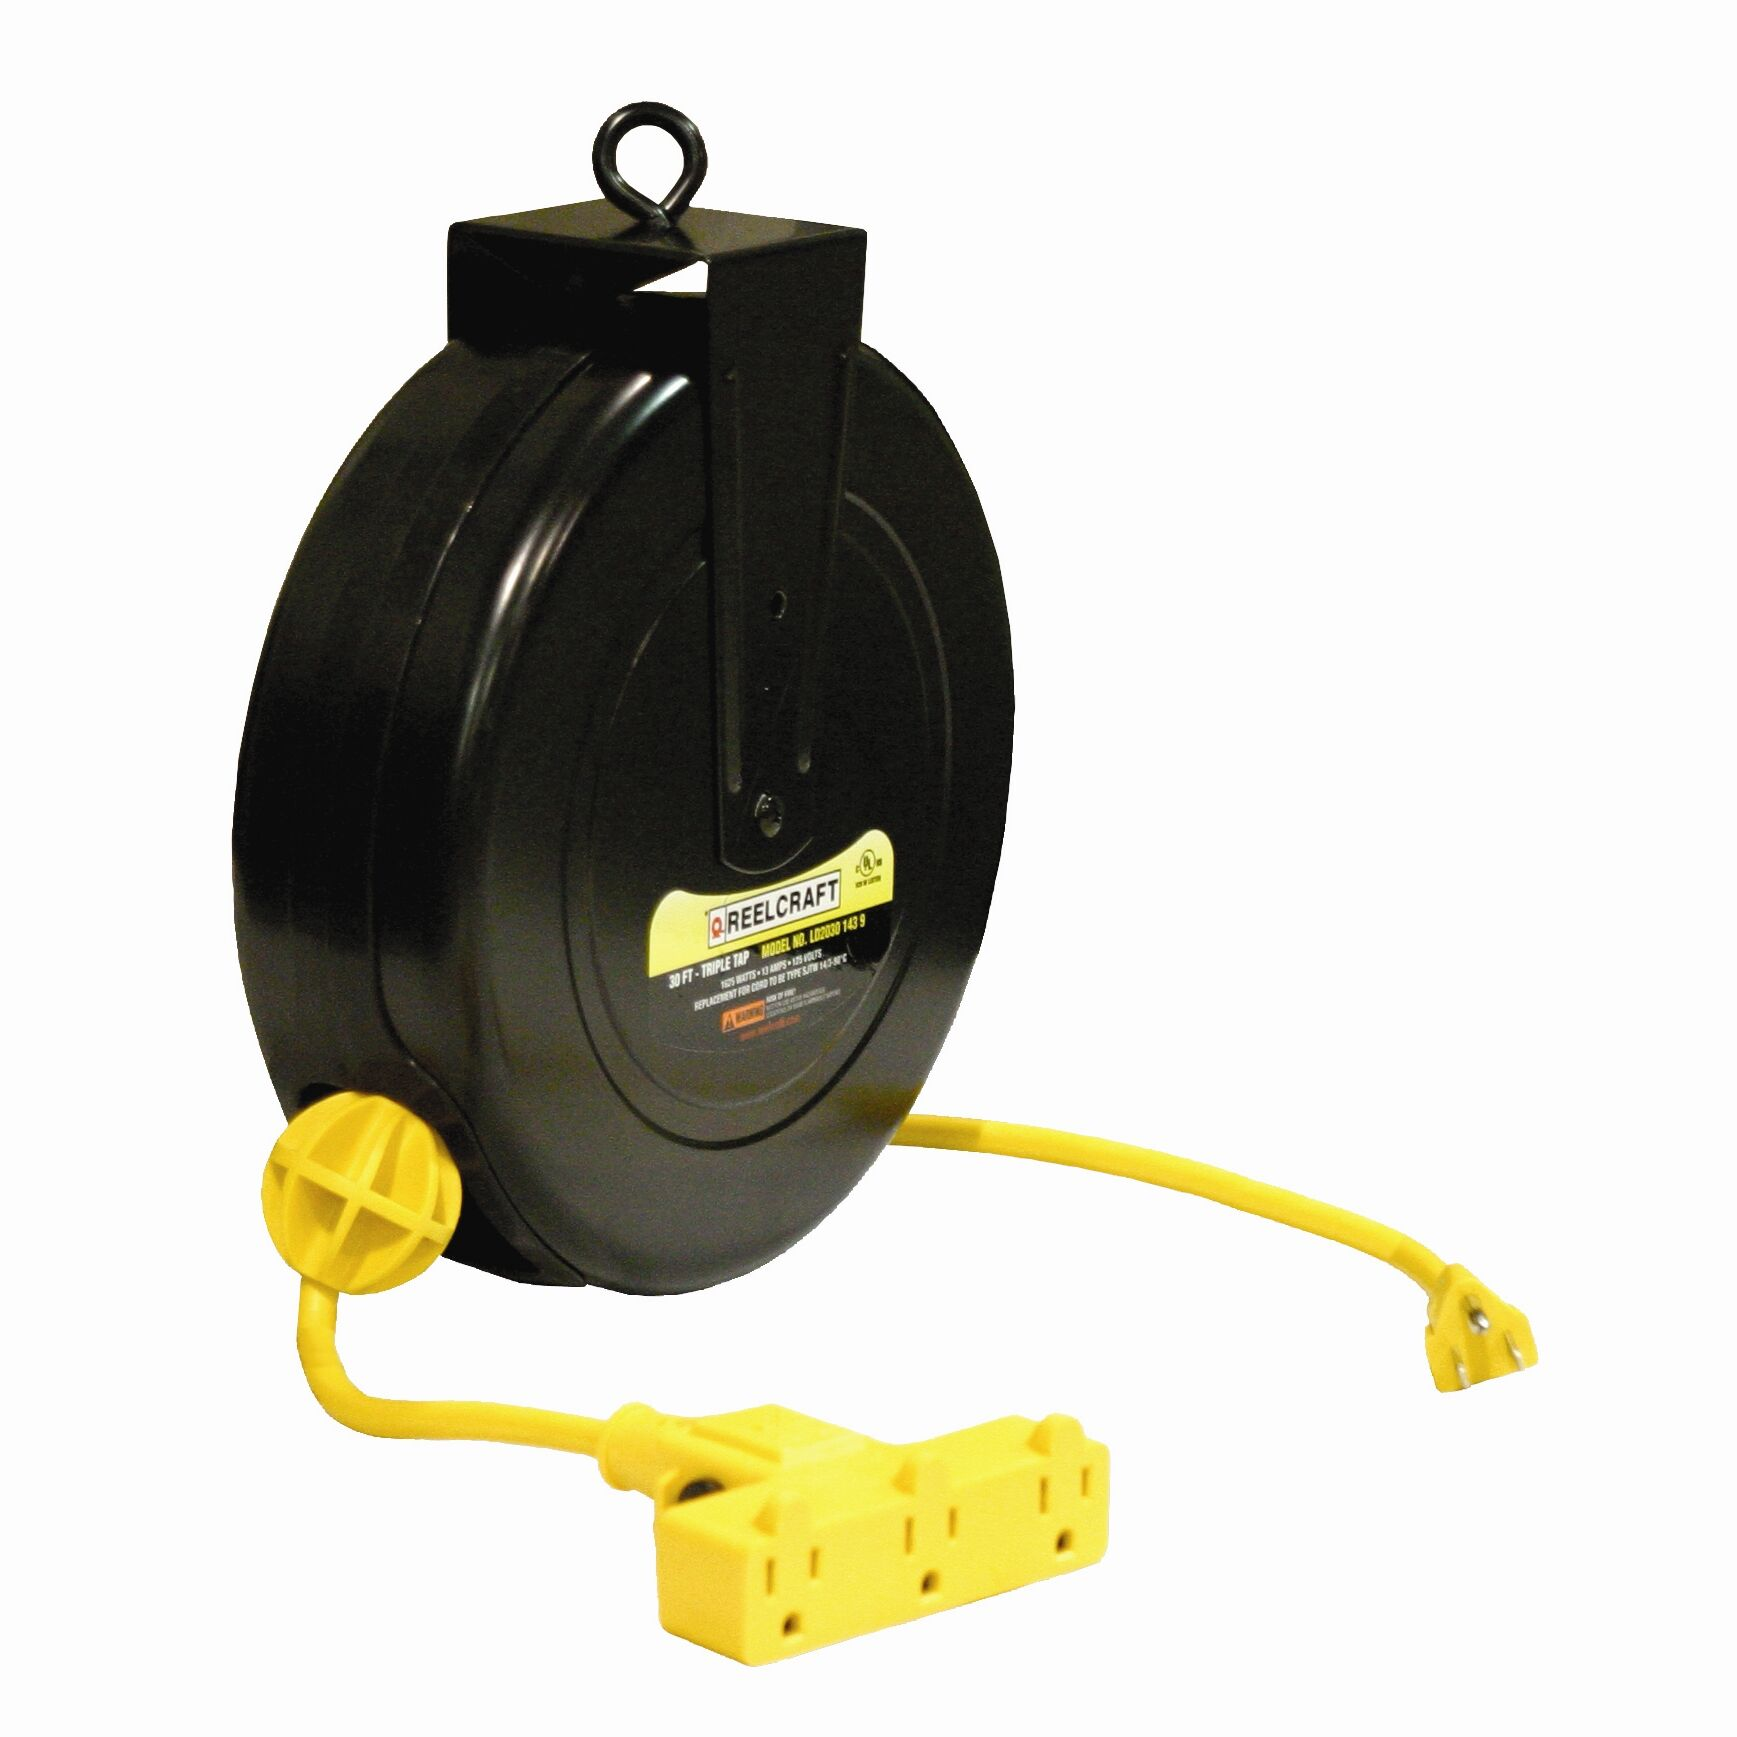 Fluidbro Completely Power 1 Extension 25 Ft Cord Reel 4 Outlet 12 Amp Construction Circuit Features Triple Ideal Use Is For A Delivering Longer Lengths Of Heavier Gauge Constructed From High Impact